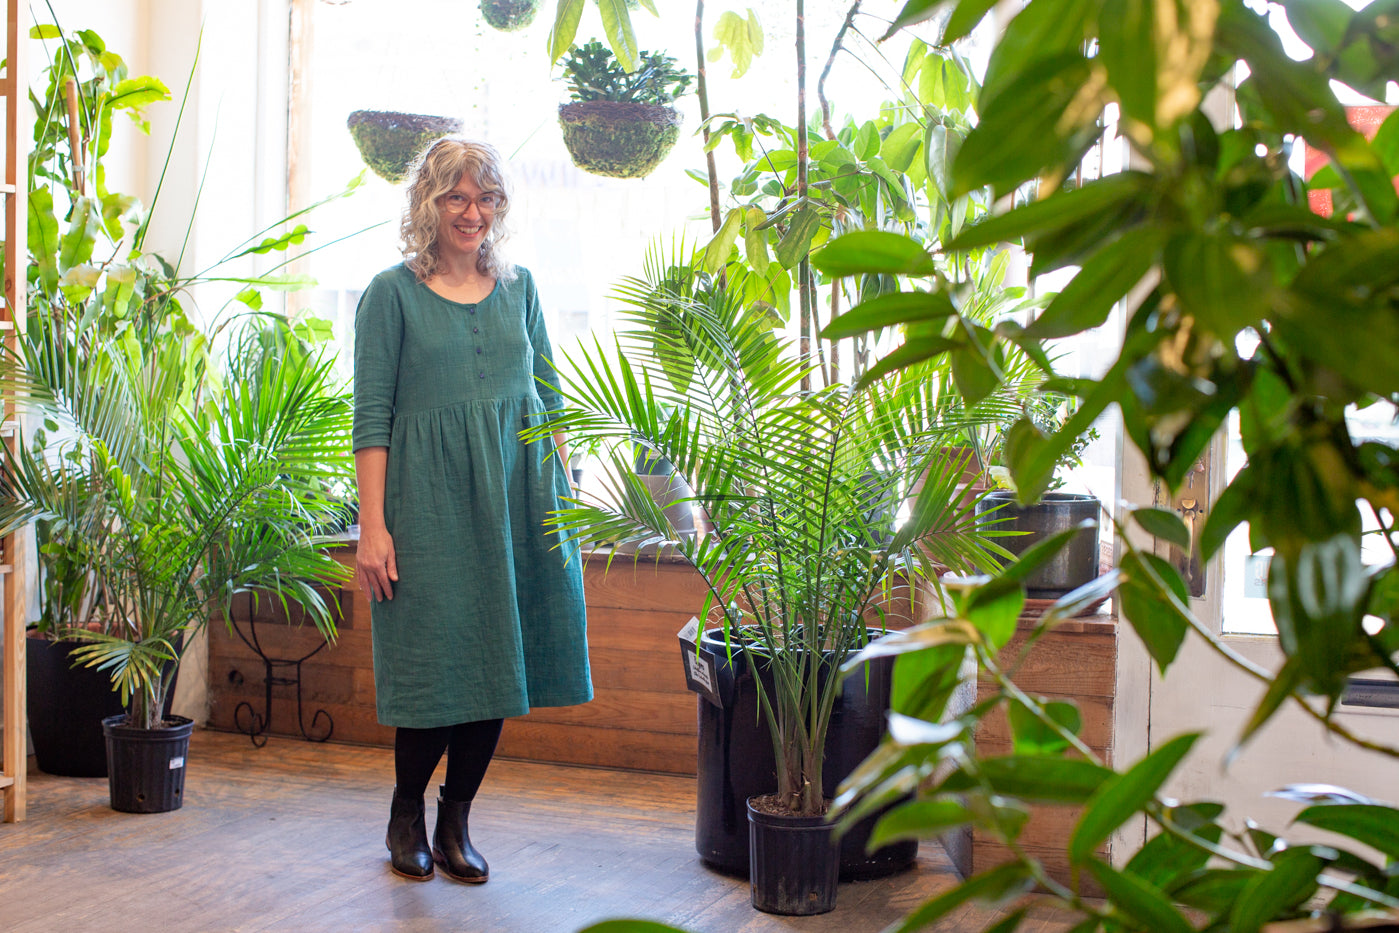 Jaime standing in front of a large window in a plant shop with sun filtering in.  Jaime is wearing a spruce linen dress, black leggings and shoes.  Jaime is surrounded by green plants